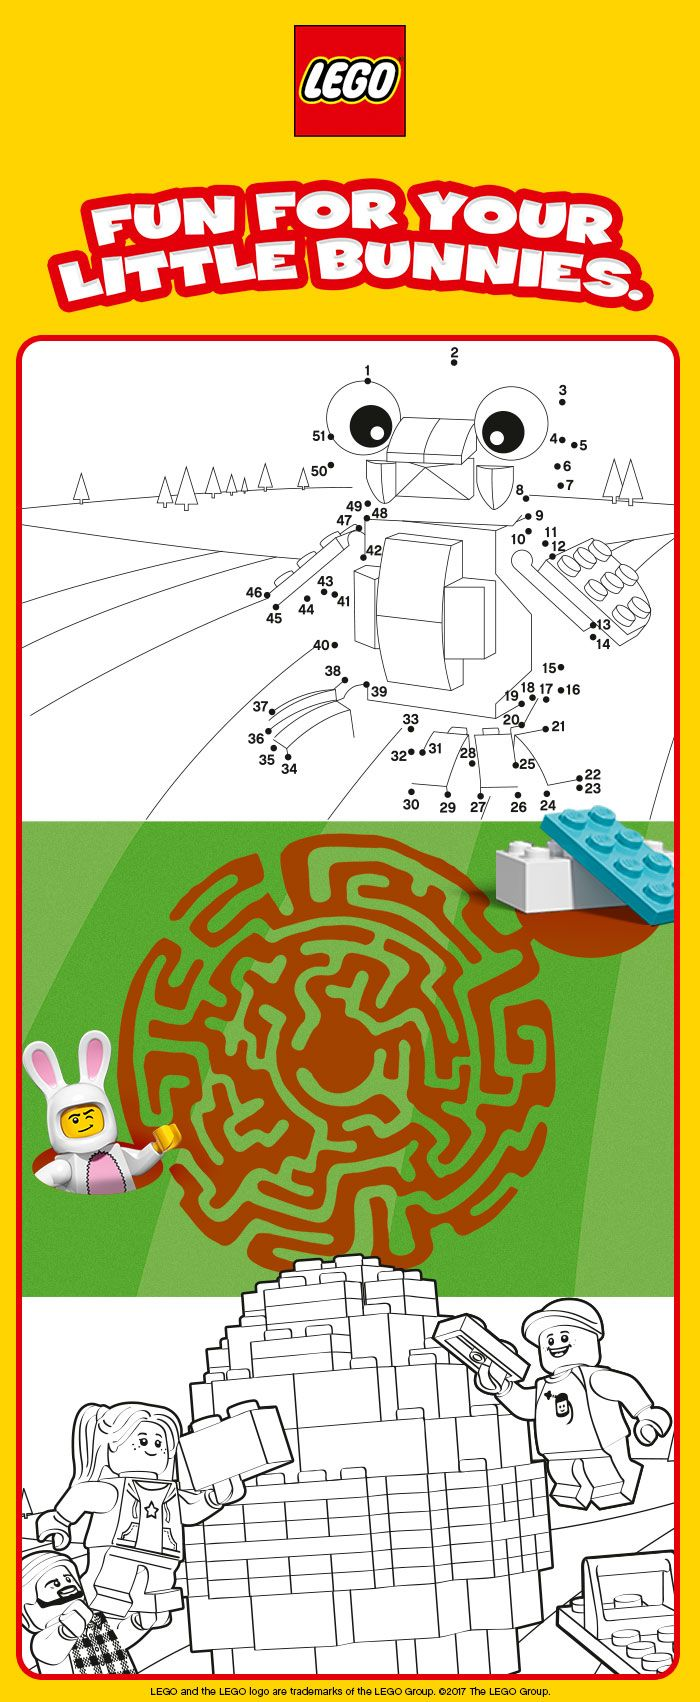 Funny LEGO Easter Activities that will keep your little bunny entertain!